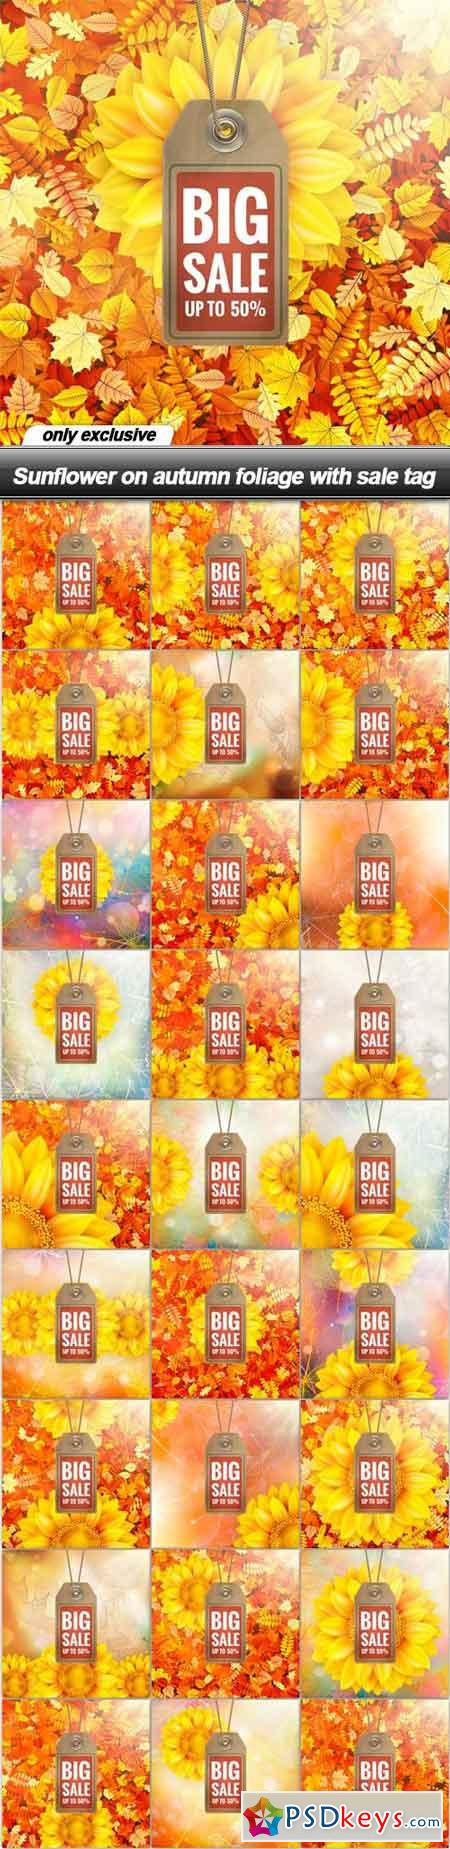 Sunflower on autumn foliage with sale tag - 26 EPS